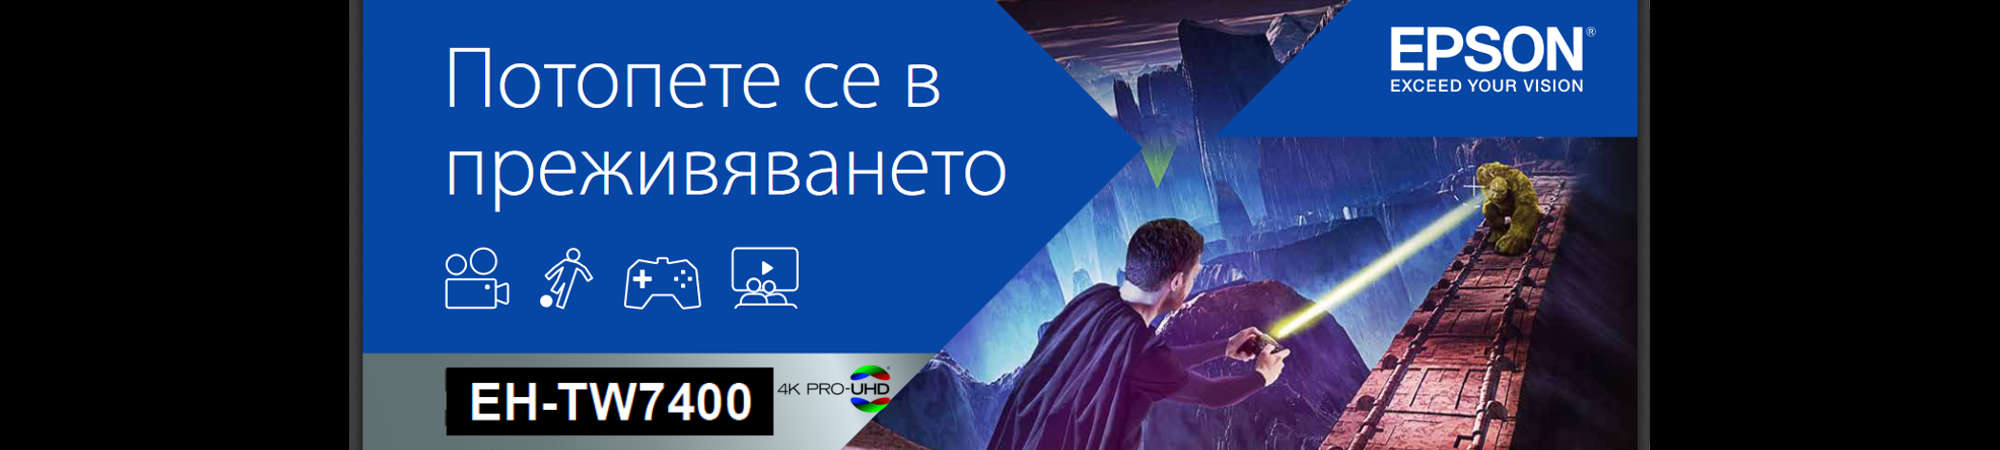 https://www.home-cinema.bg/proektor-za-domashno-kino-epson-eh-tw7400-4k-enhanced